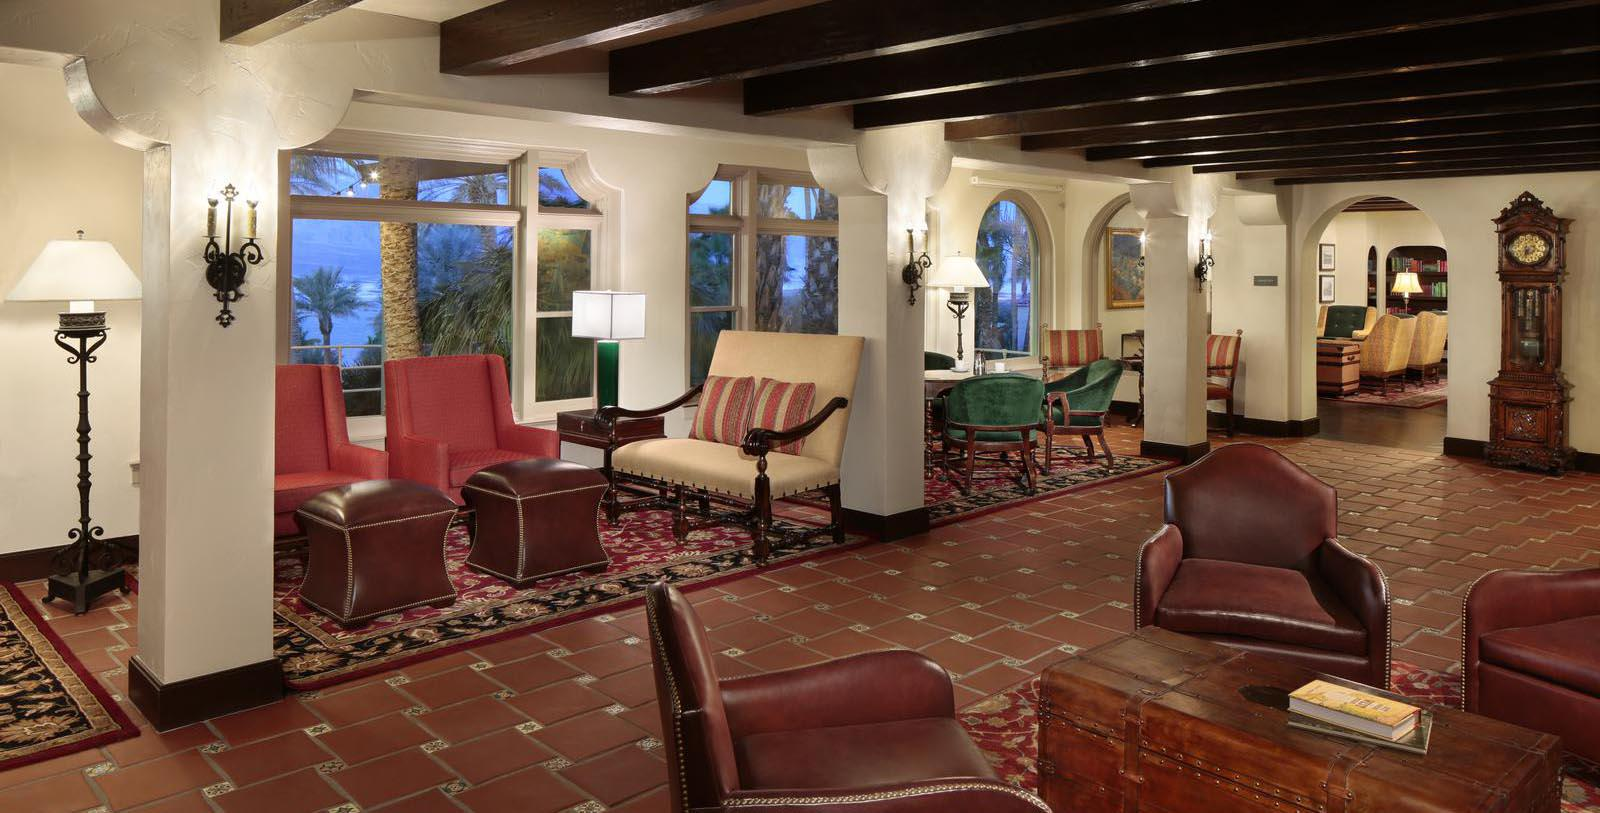 Image of Seating Area The Inn at Death Valley, 1927, Member of Historic Hotels of America, in Death Valley, California, Discover